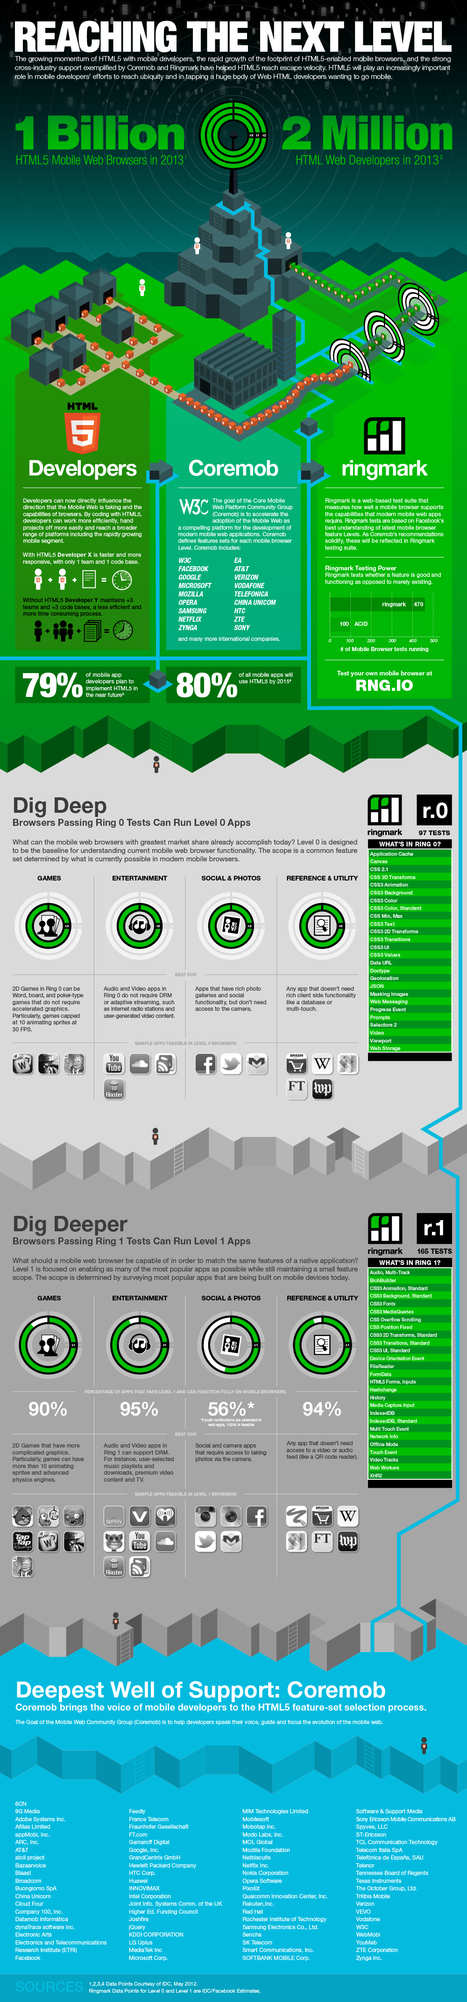 IDC Next Level of Mobile Web | Visual.ly | Cloud Central | Scoop.it